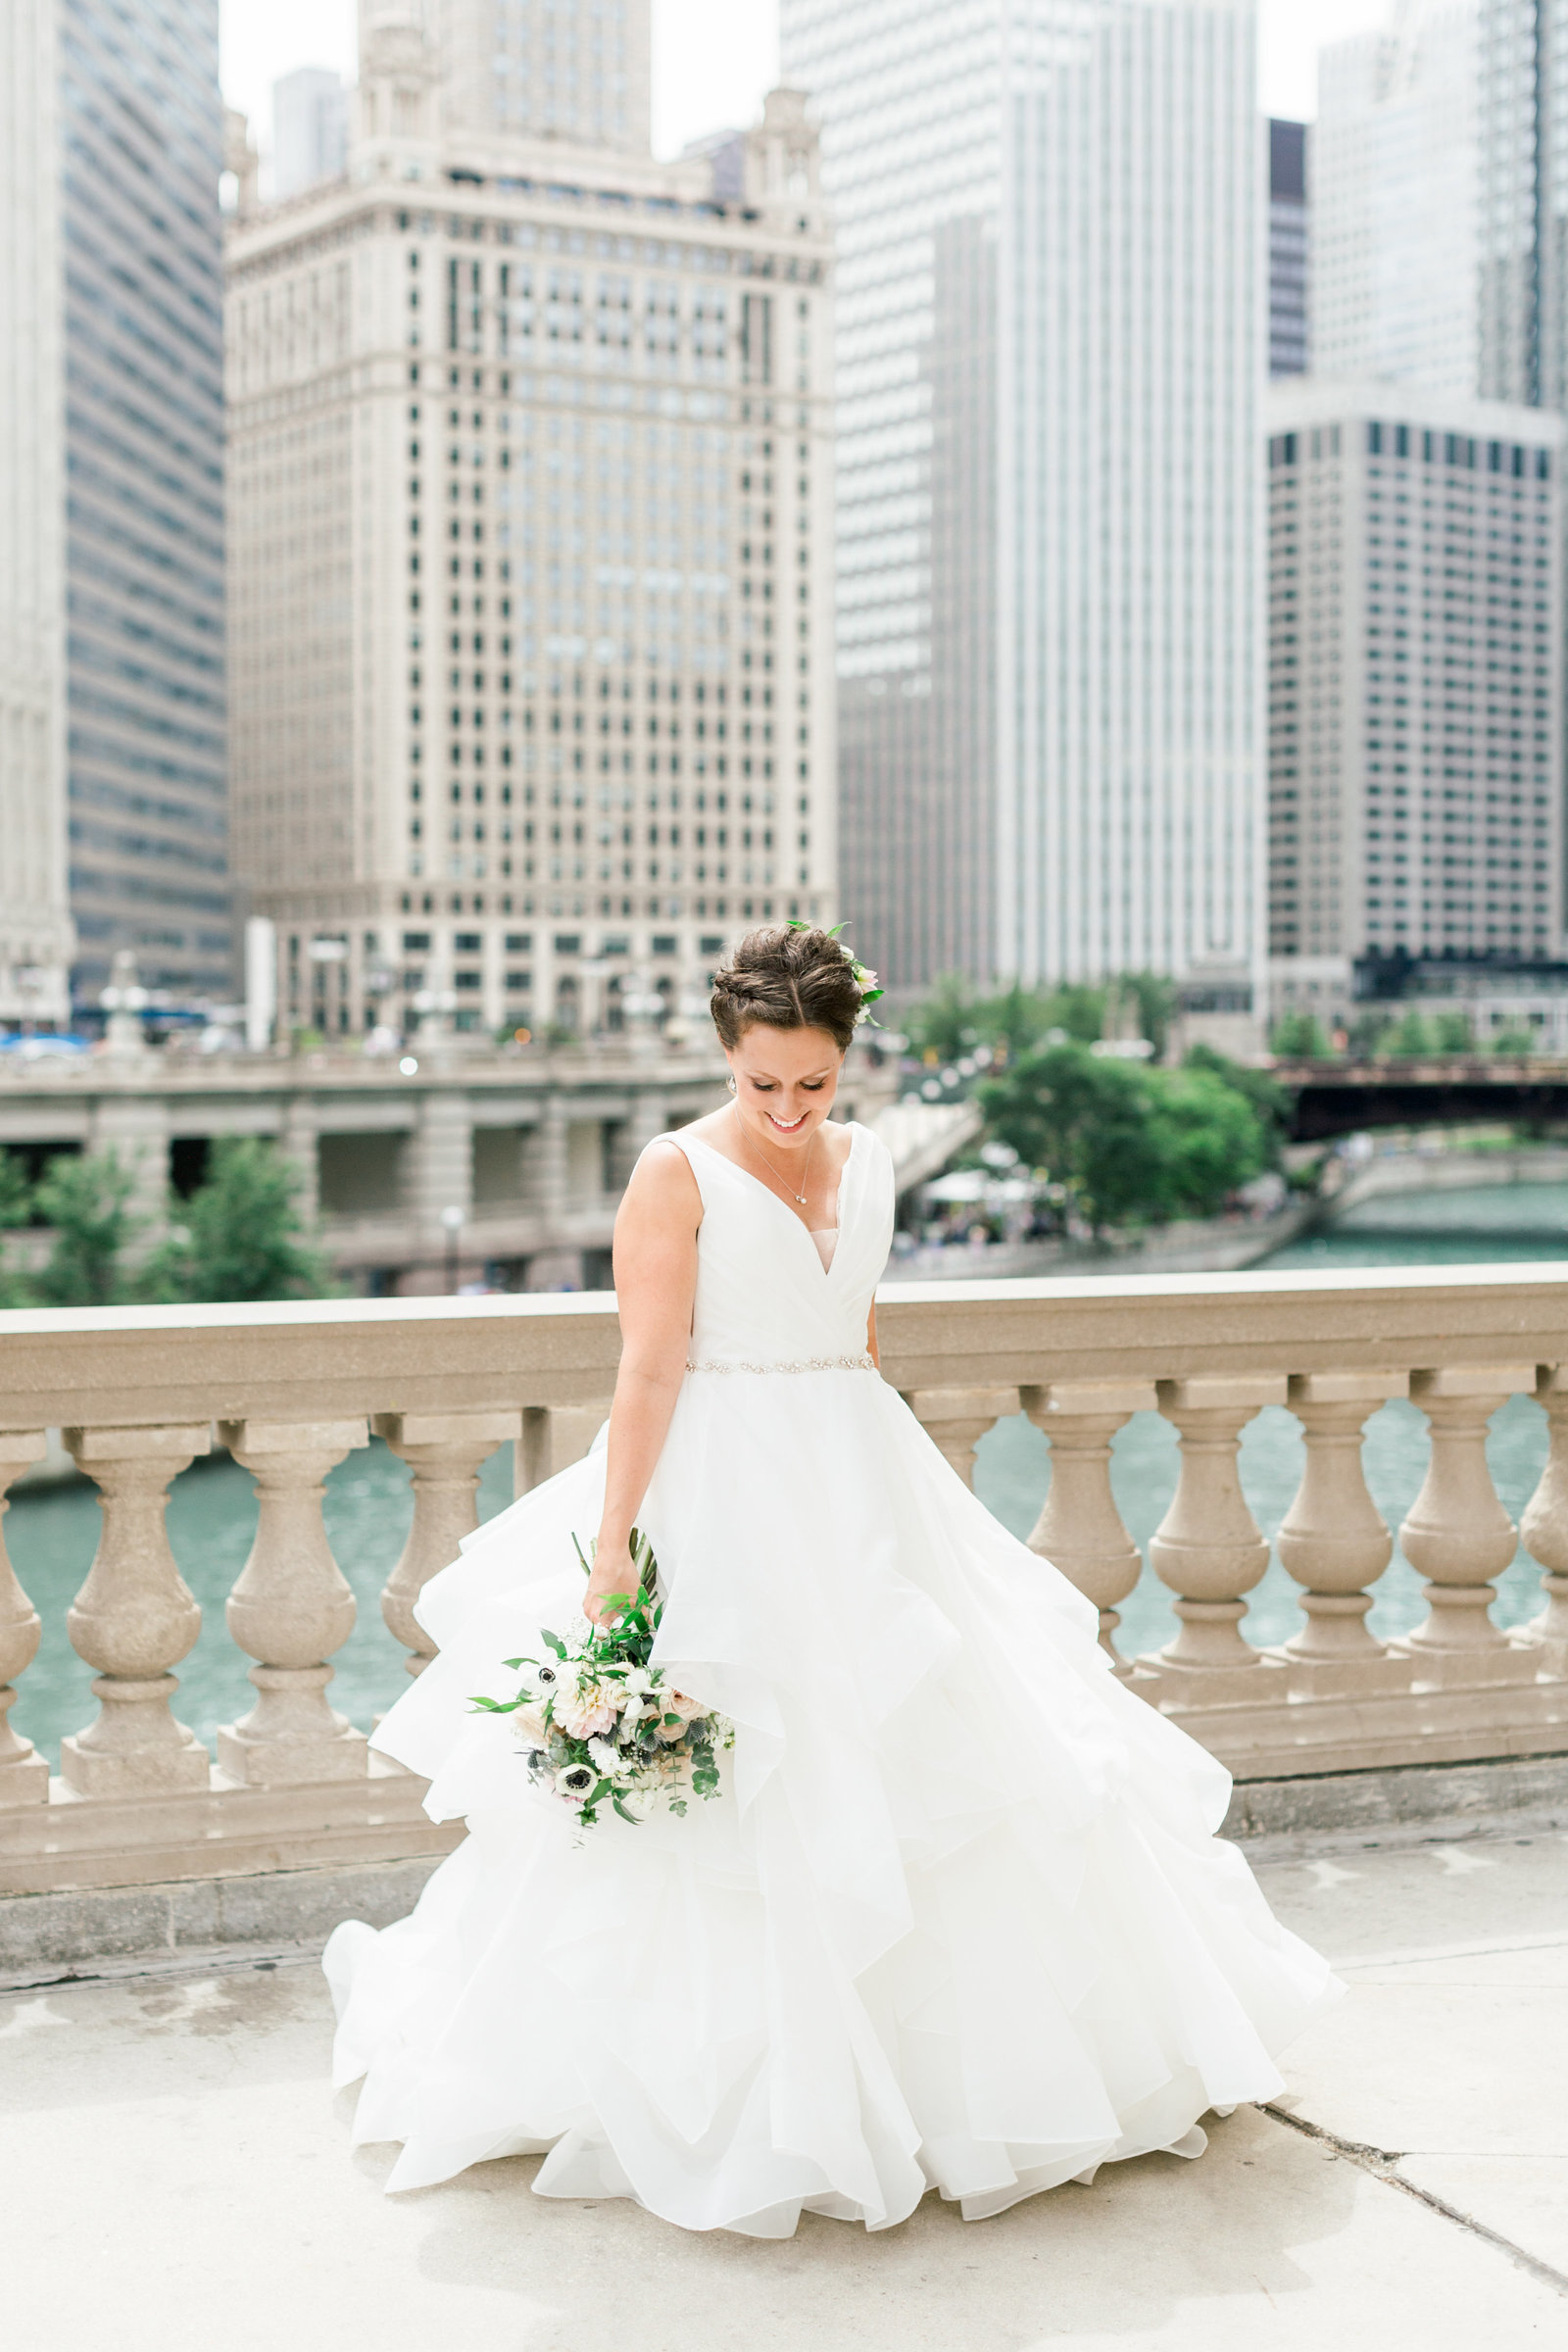 lindsey-taylor-photography-chicago-wedding-photographer252